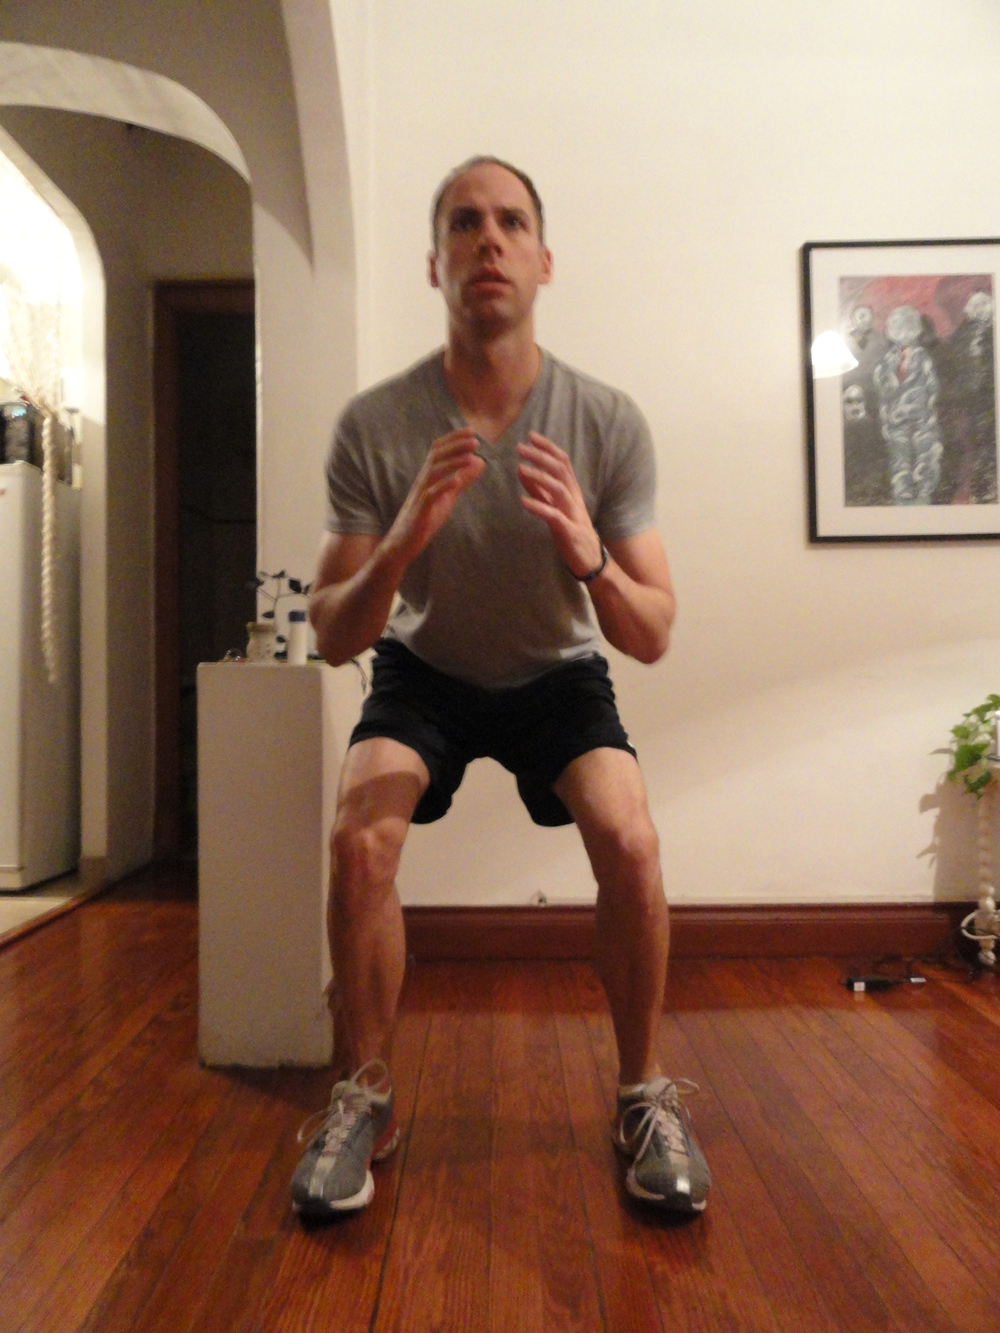 Position A for squatting side lunge: First squat deeply and stay there.